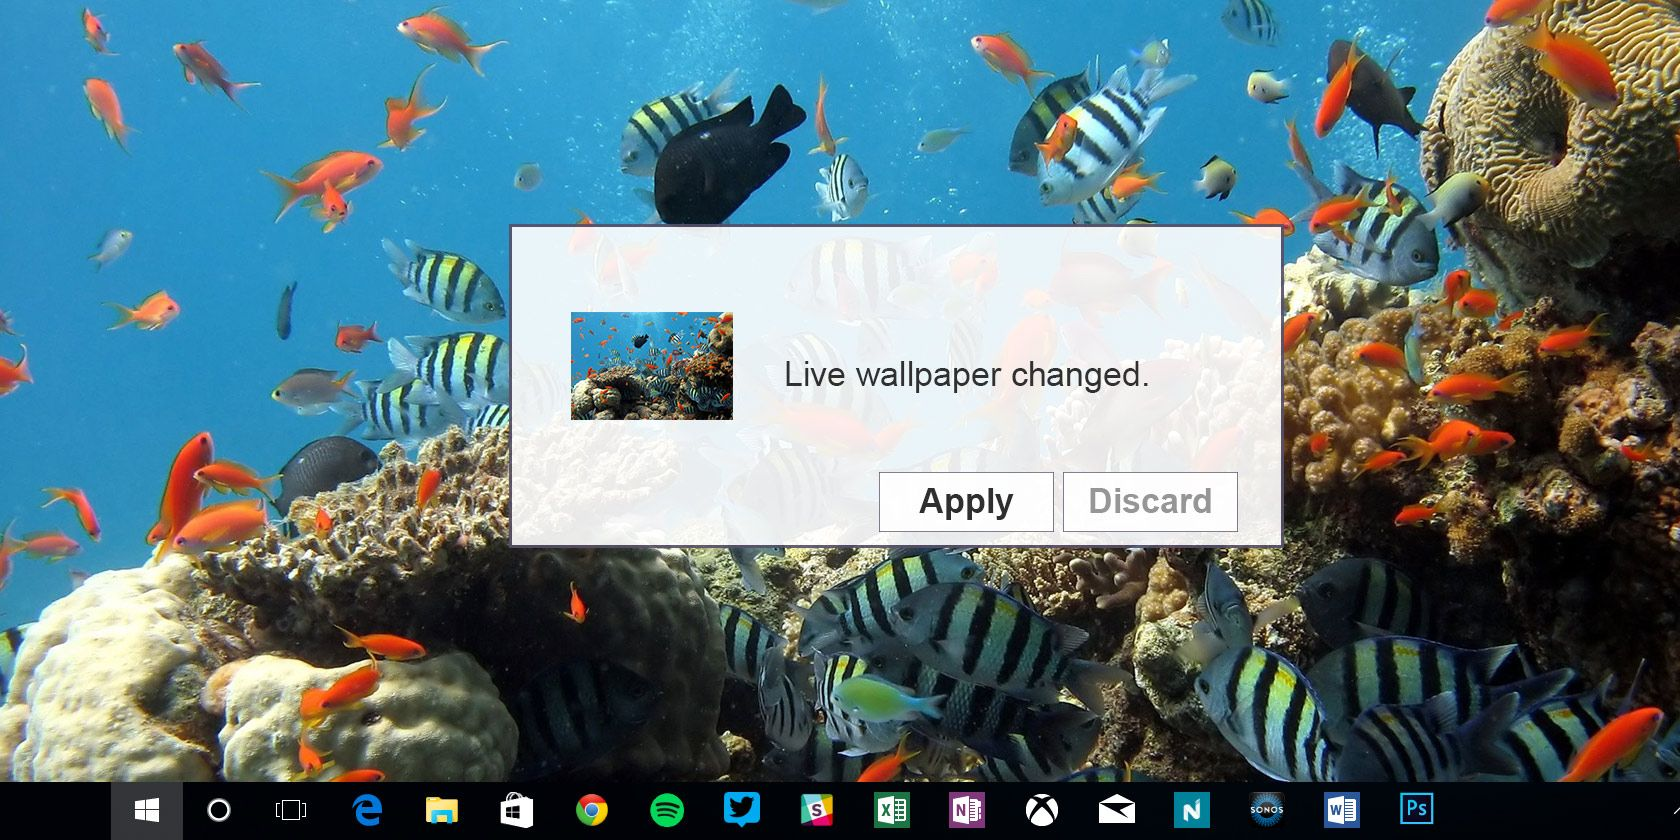 How To Set Live Wallpapers Animated Desktop Backgrounds In Windows 10 Animated Desktop Backgrounds Motion Wallpapers Moving Wallpapers